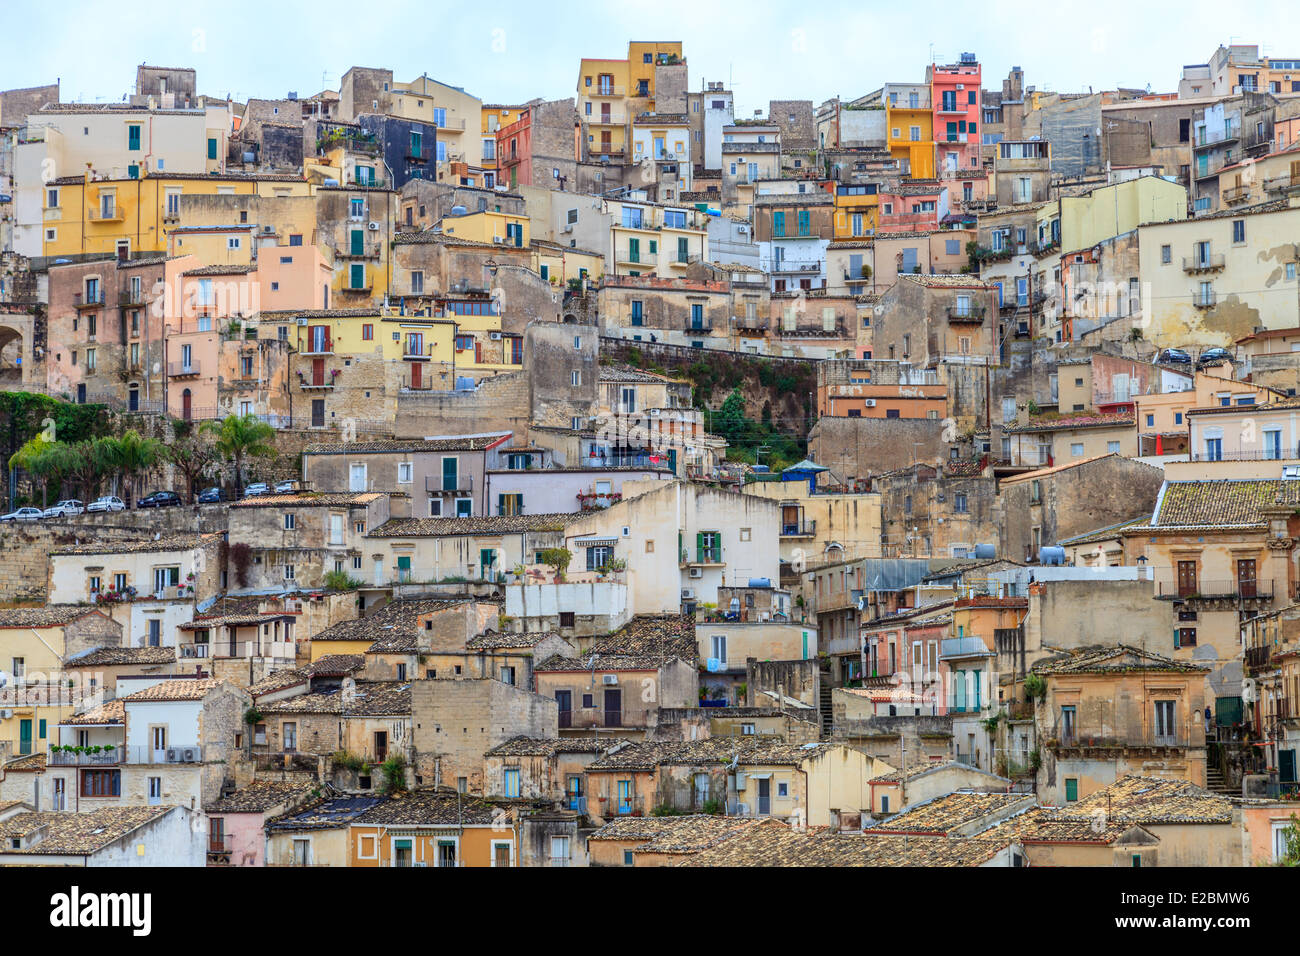 Panoramic view of Ragusa Ibla houses - Stock Image